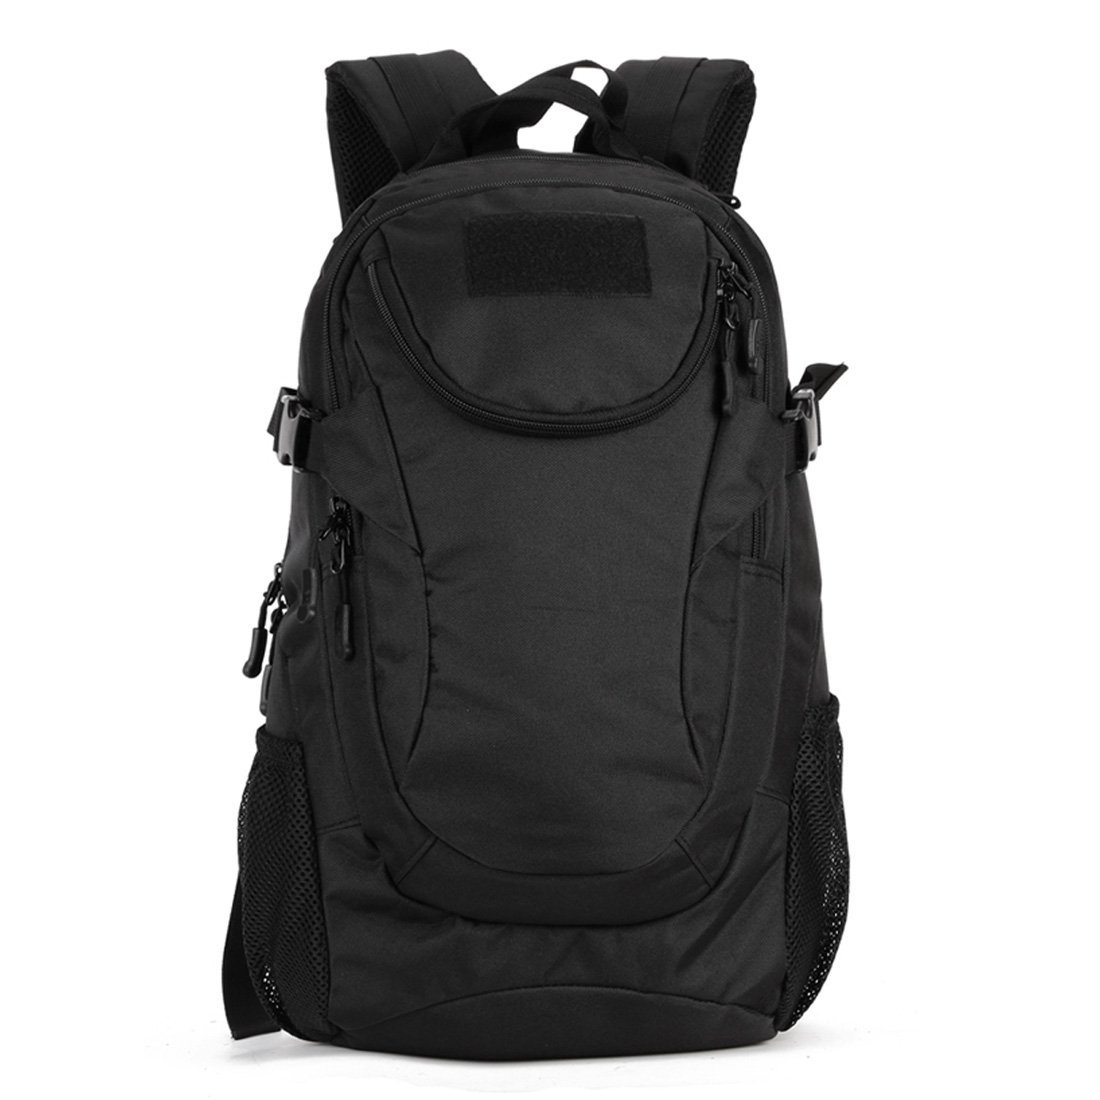 Amazon.com   QiMiaoBaBy 25L Military Daypack MOLLE Rucksack Gear Tactical  Assault Casual Daypacks Student Bag Backpack for Hunting Camping Trekking  Travel ... 7b76620d640f4